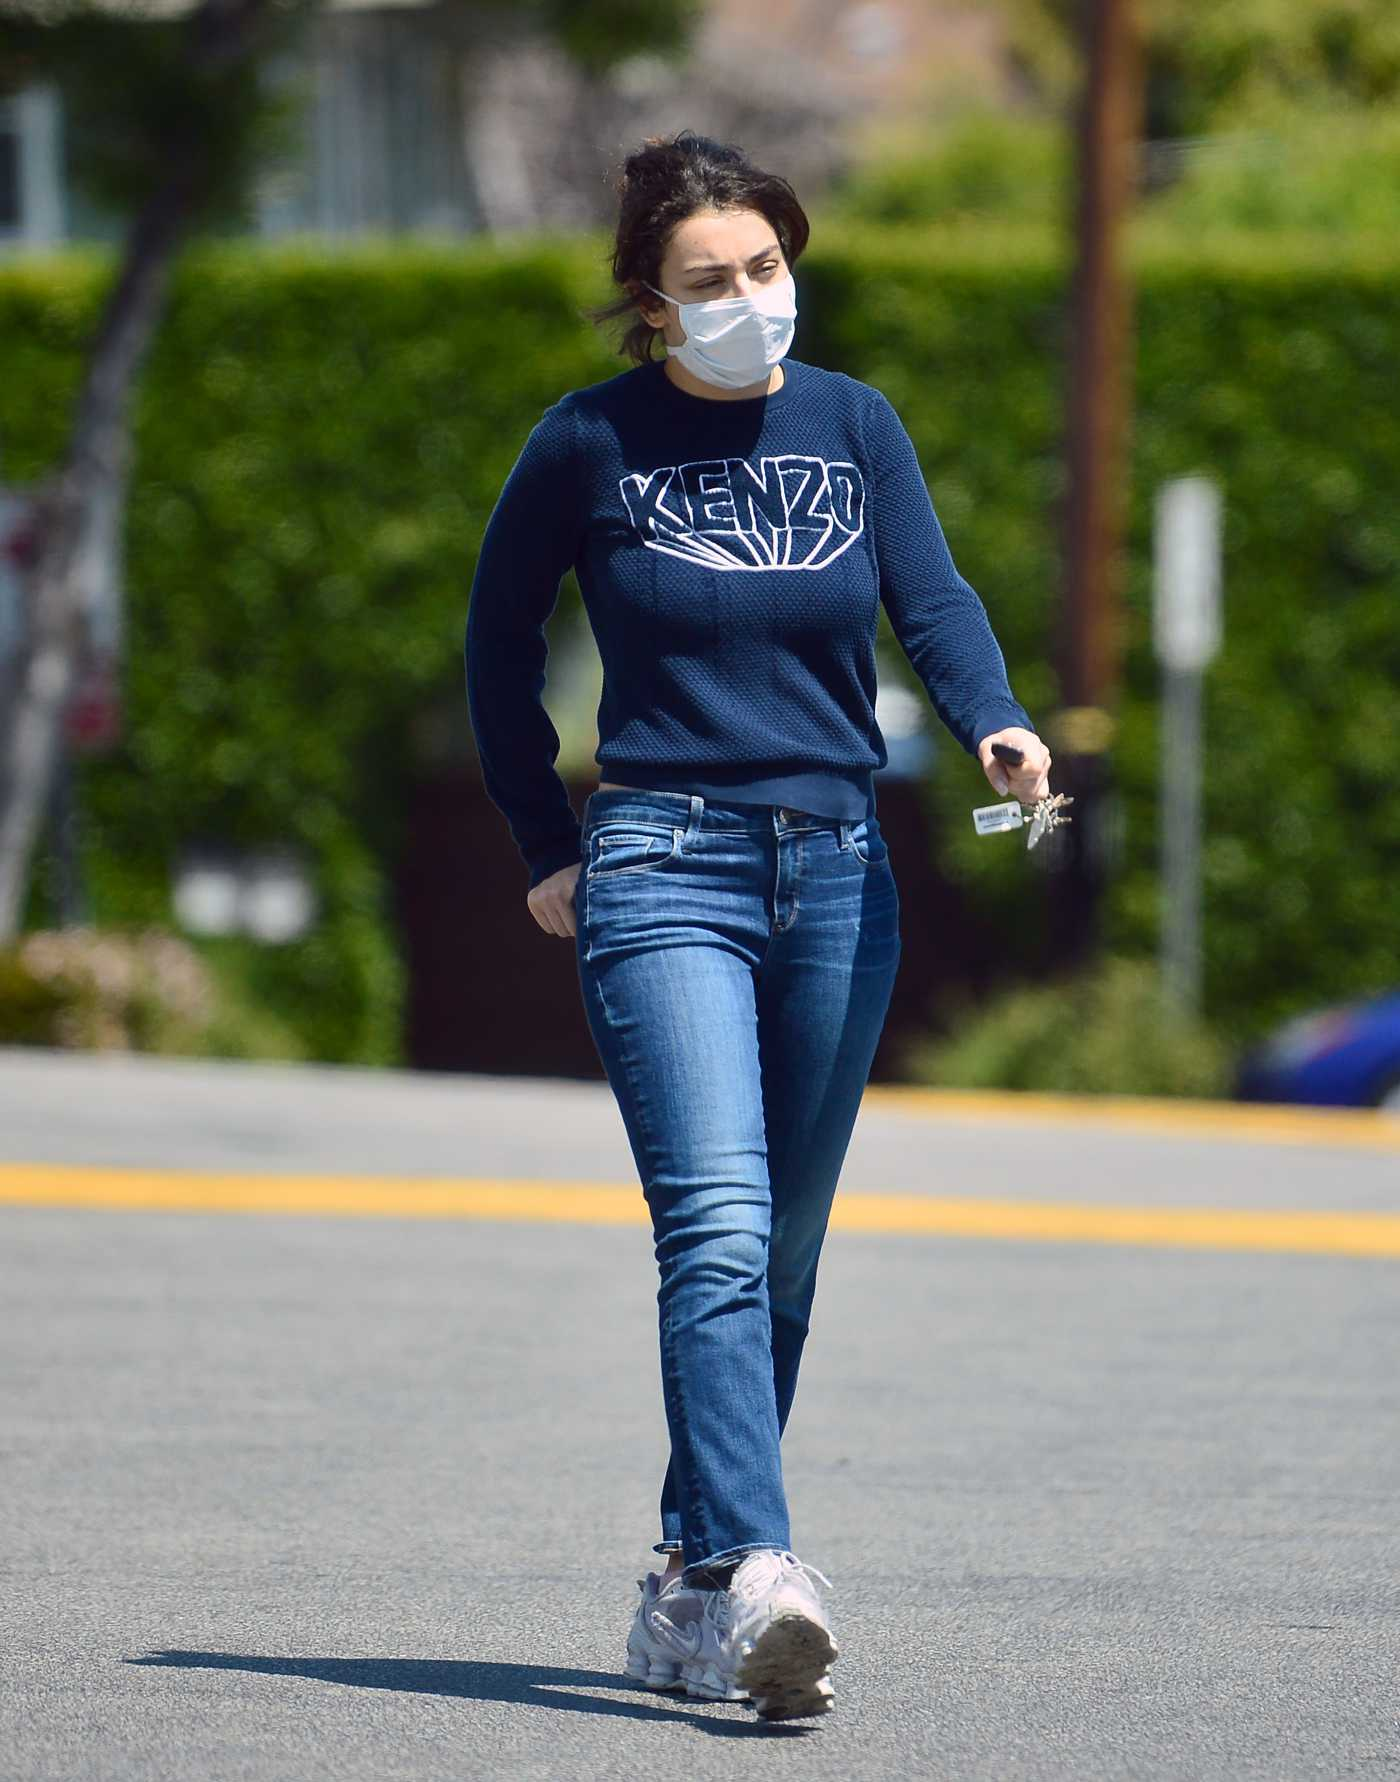 Charli XCX in a Face Mask Leaves a Grocery Store During the COVID-19 Lockdown in Los Angeles 04/20/2020